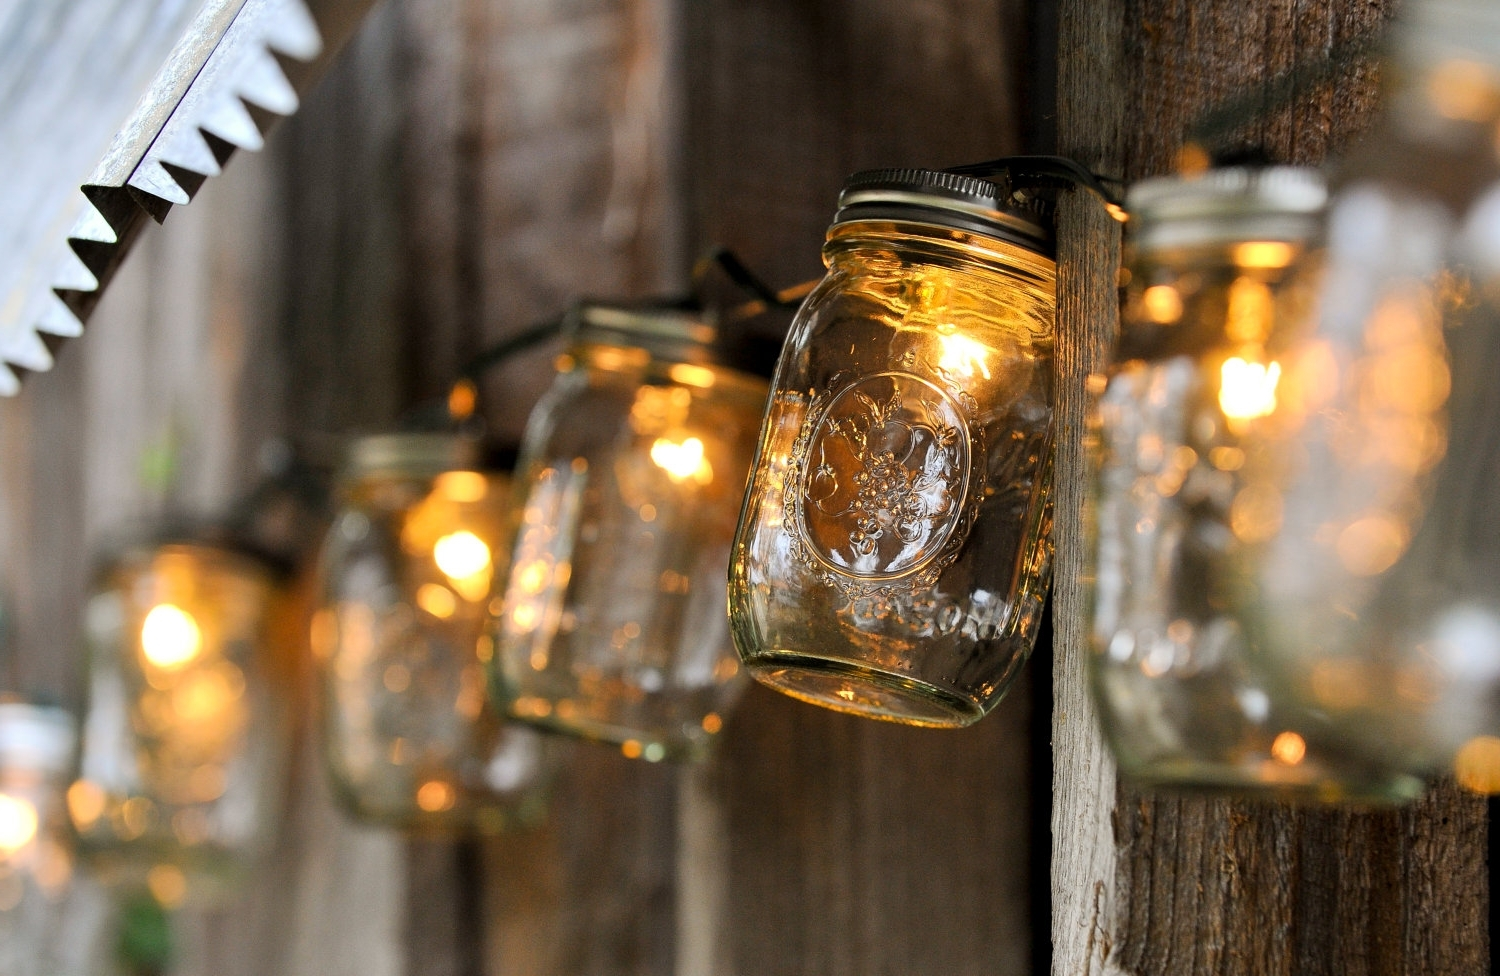 Outdoor Jar Lanterns With Latest 7 Lighting Ideas That Will Make Your Yard Shine (View 11 of 20)